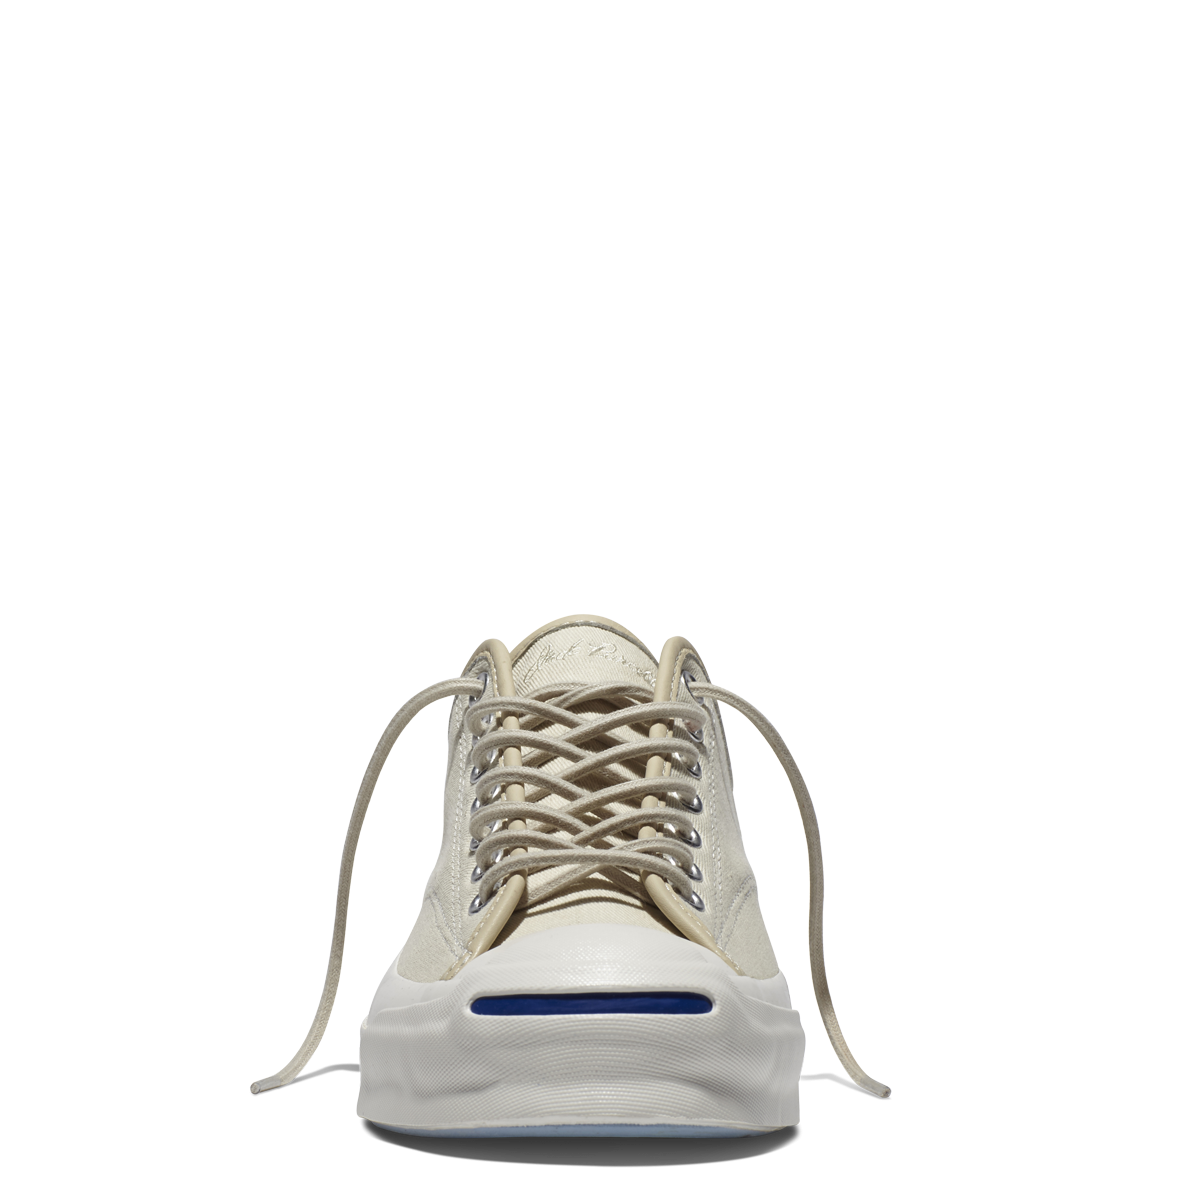 92c6d4f31331 Converse Jack Purcell Signature Twill Shield Canvas The Converse Jack  Purcell Signature collection introduces a thicker Shield Canvas with a  water repellent ...